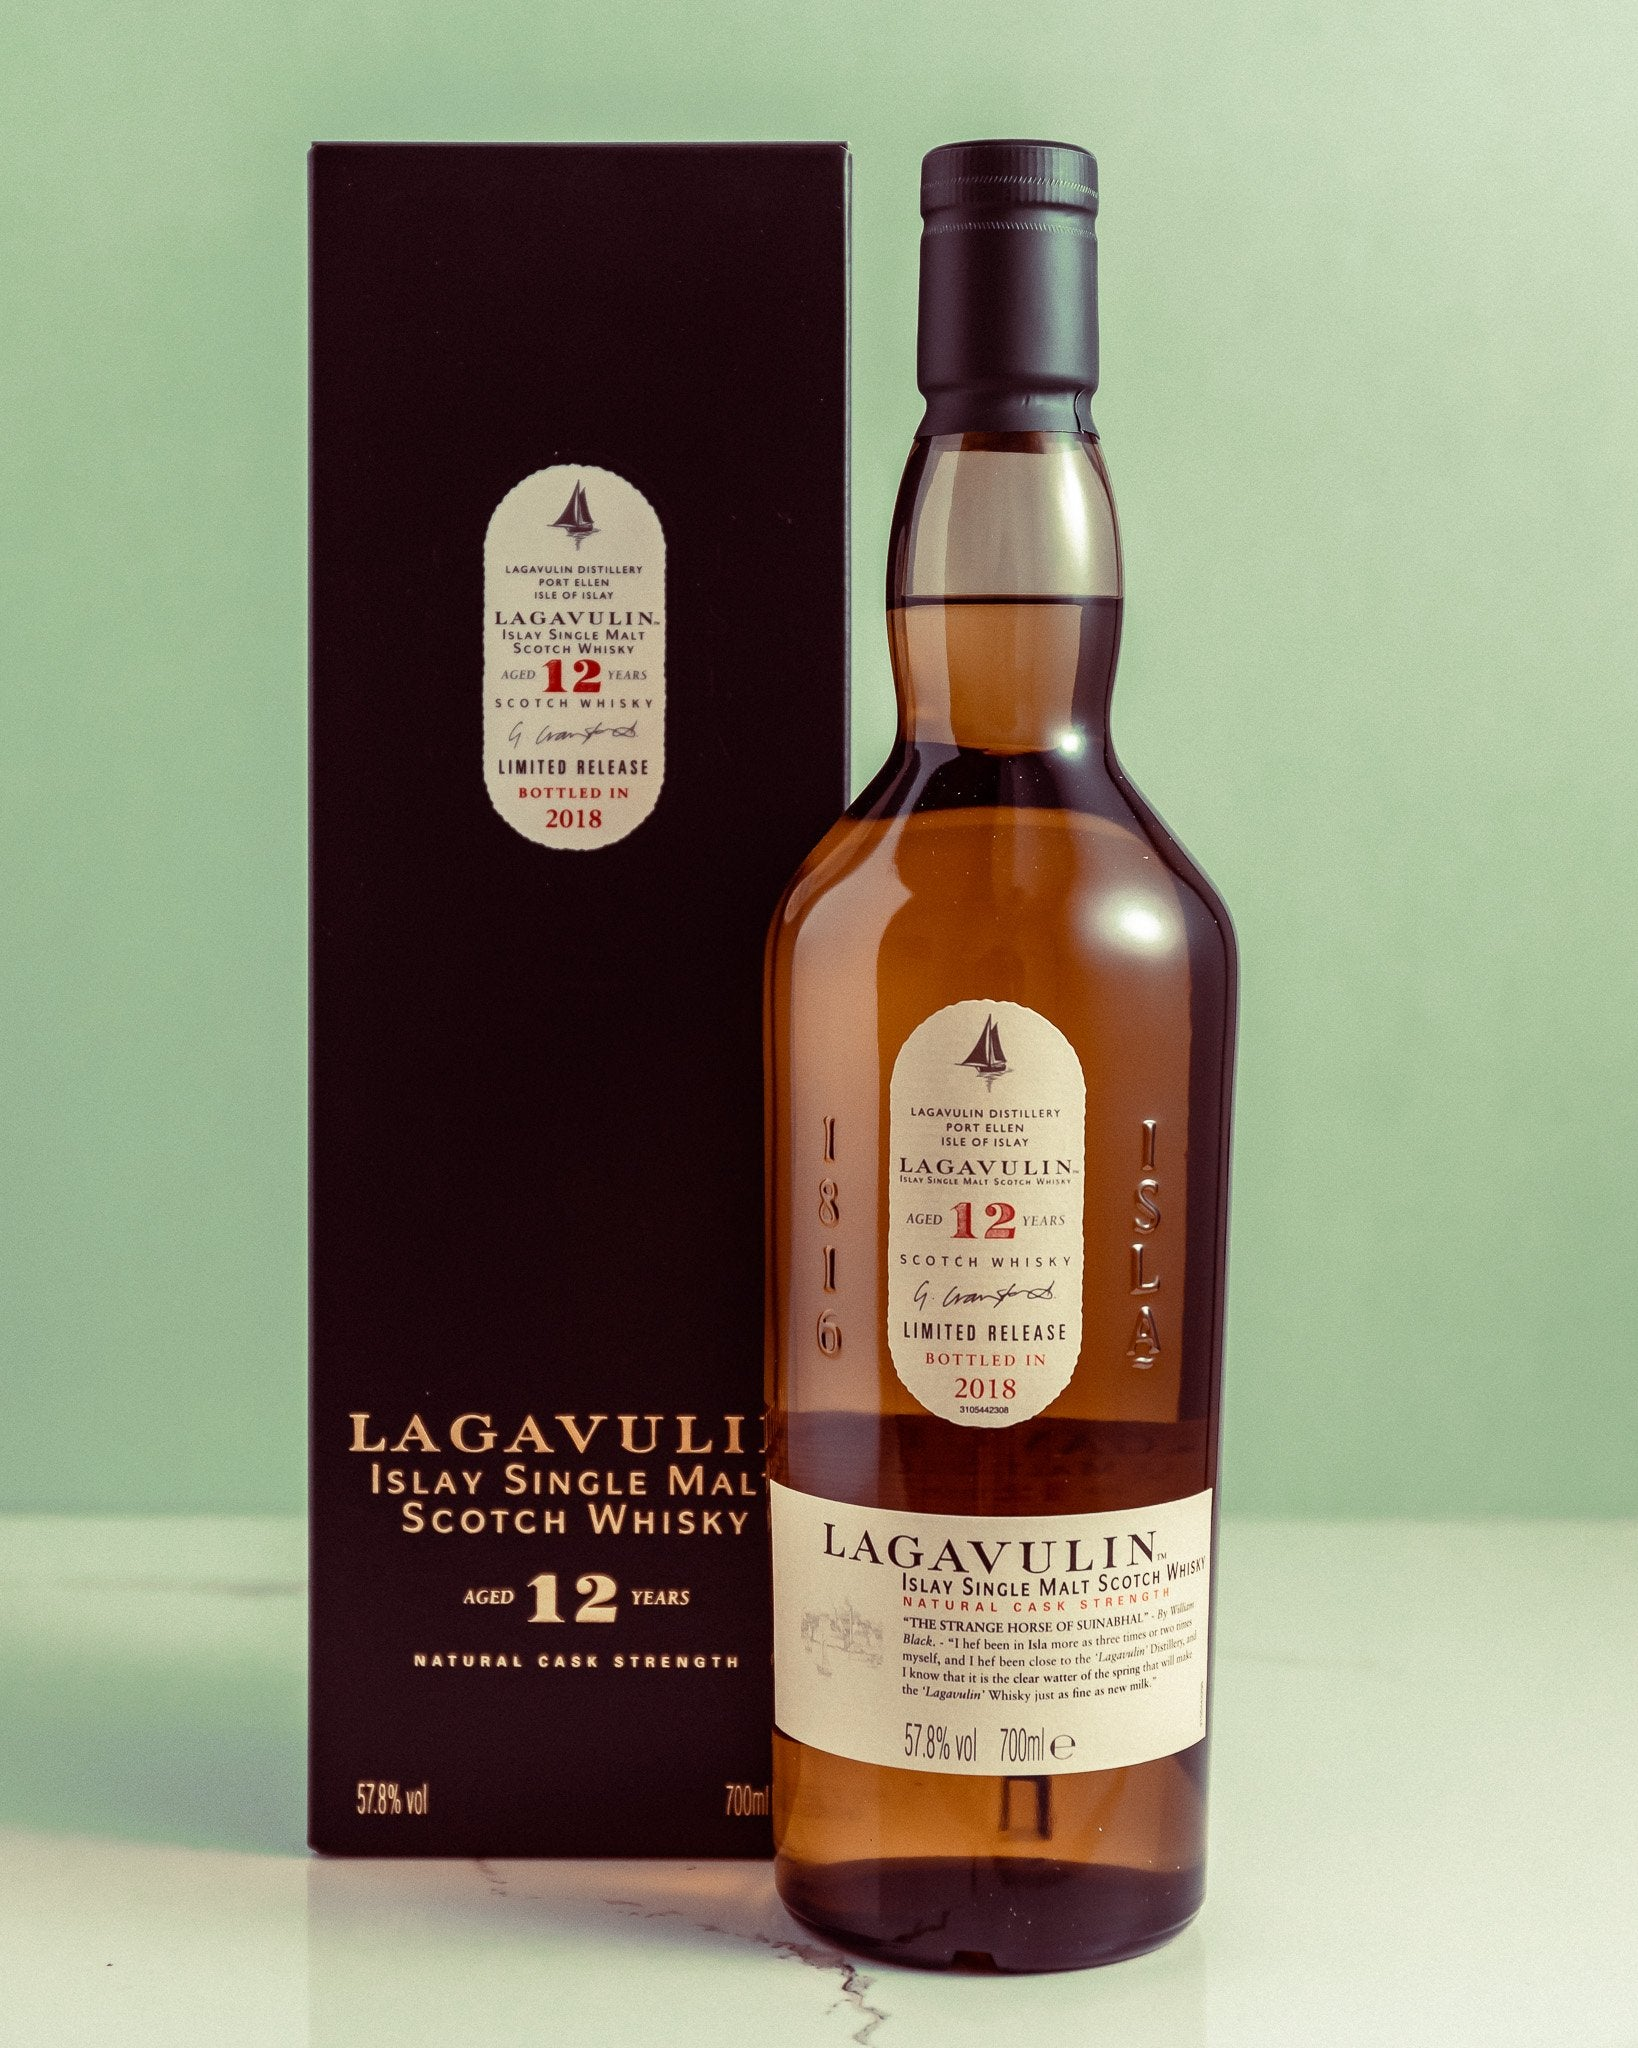 Lagavulin 12 Year Old (2018)